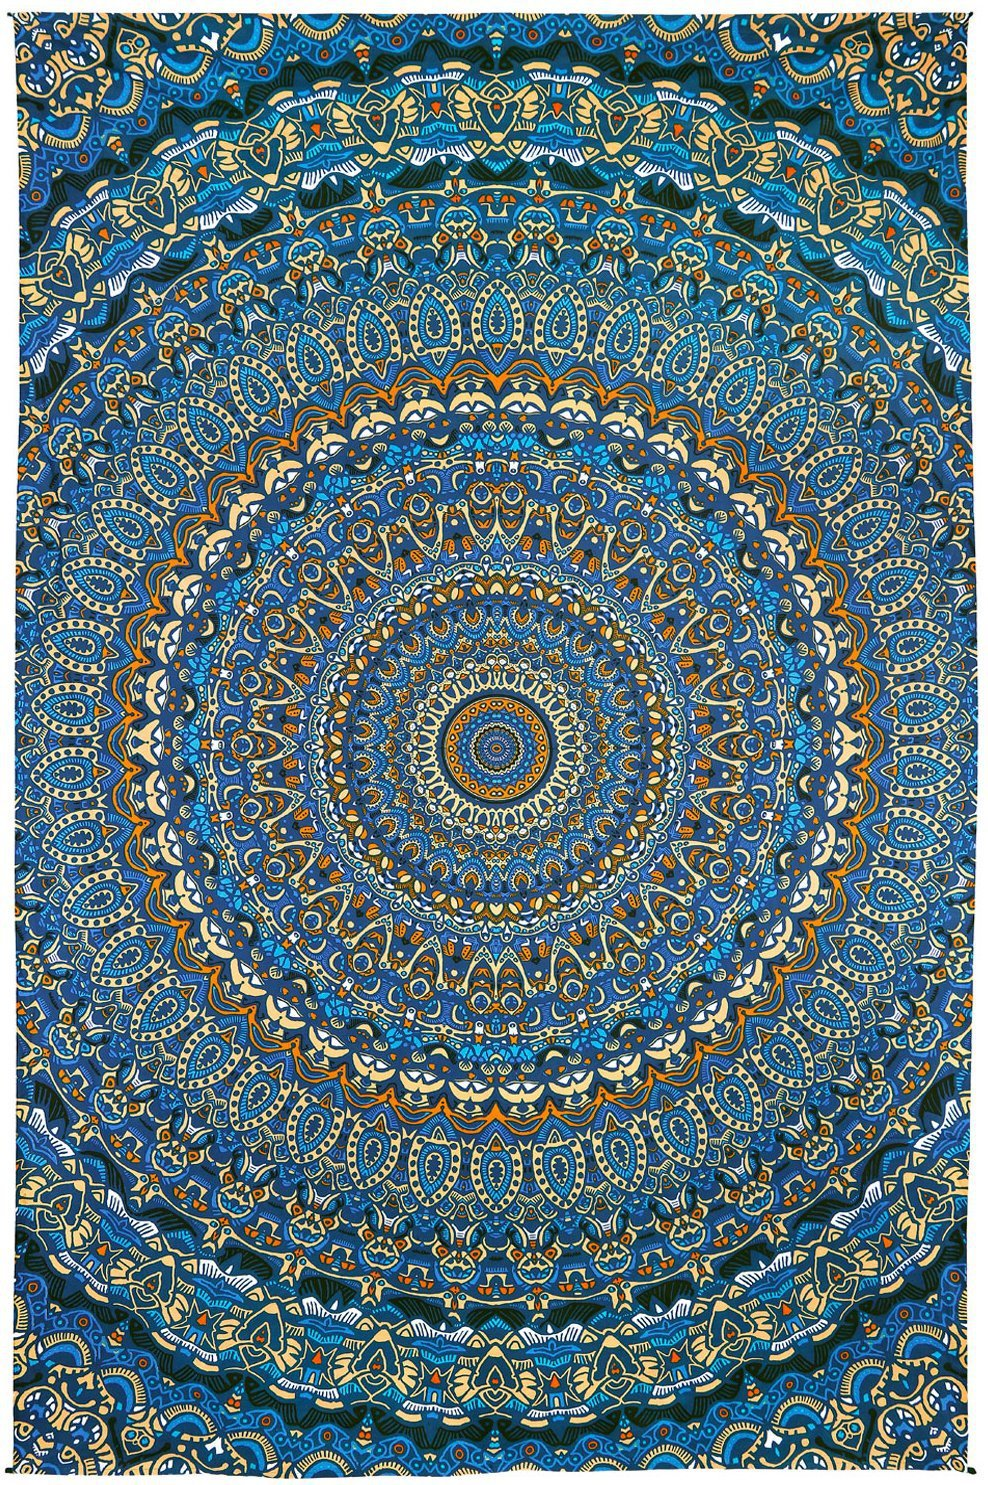 Tapestries Chris Pinkerton - Harmony in Color - Tapestry 011252